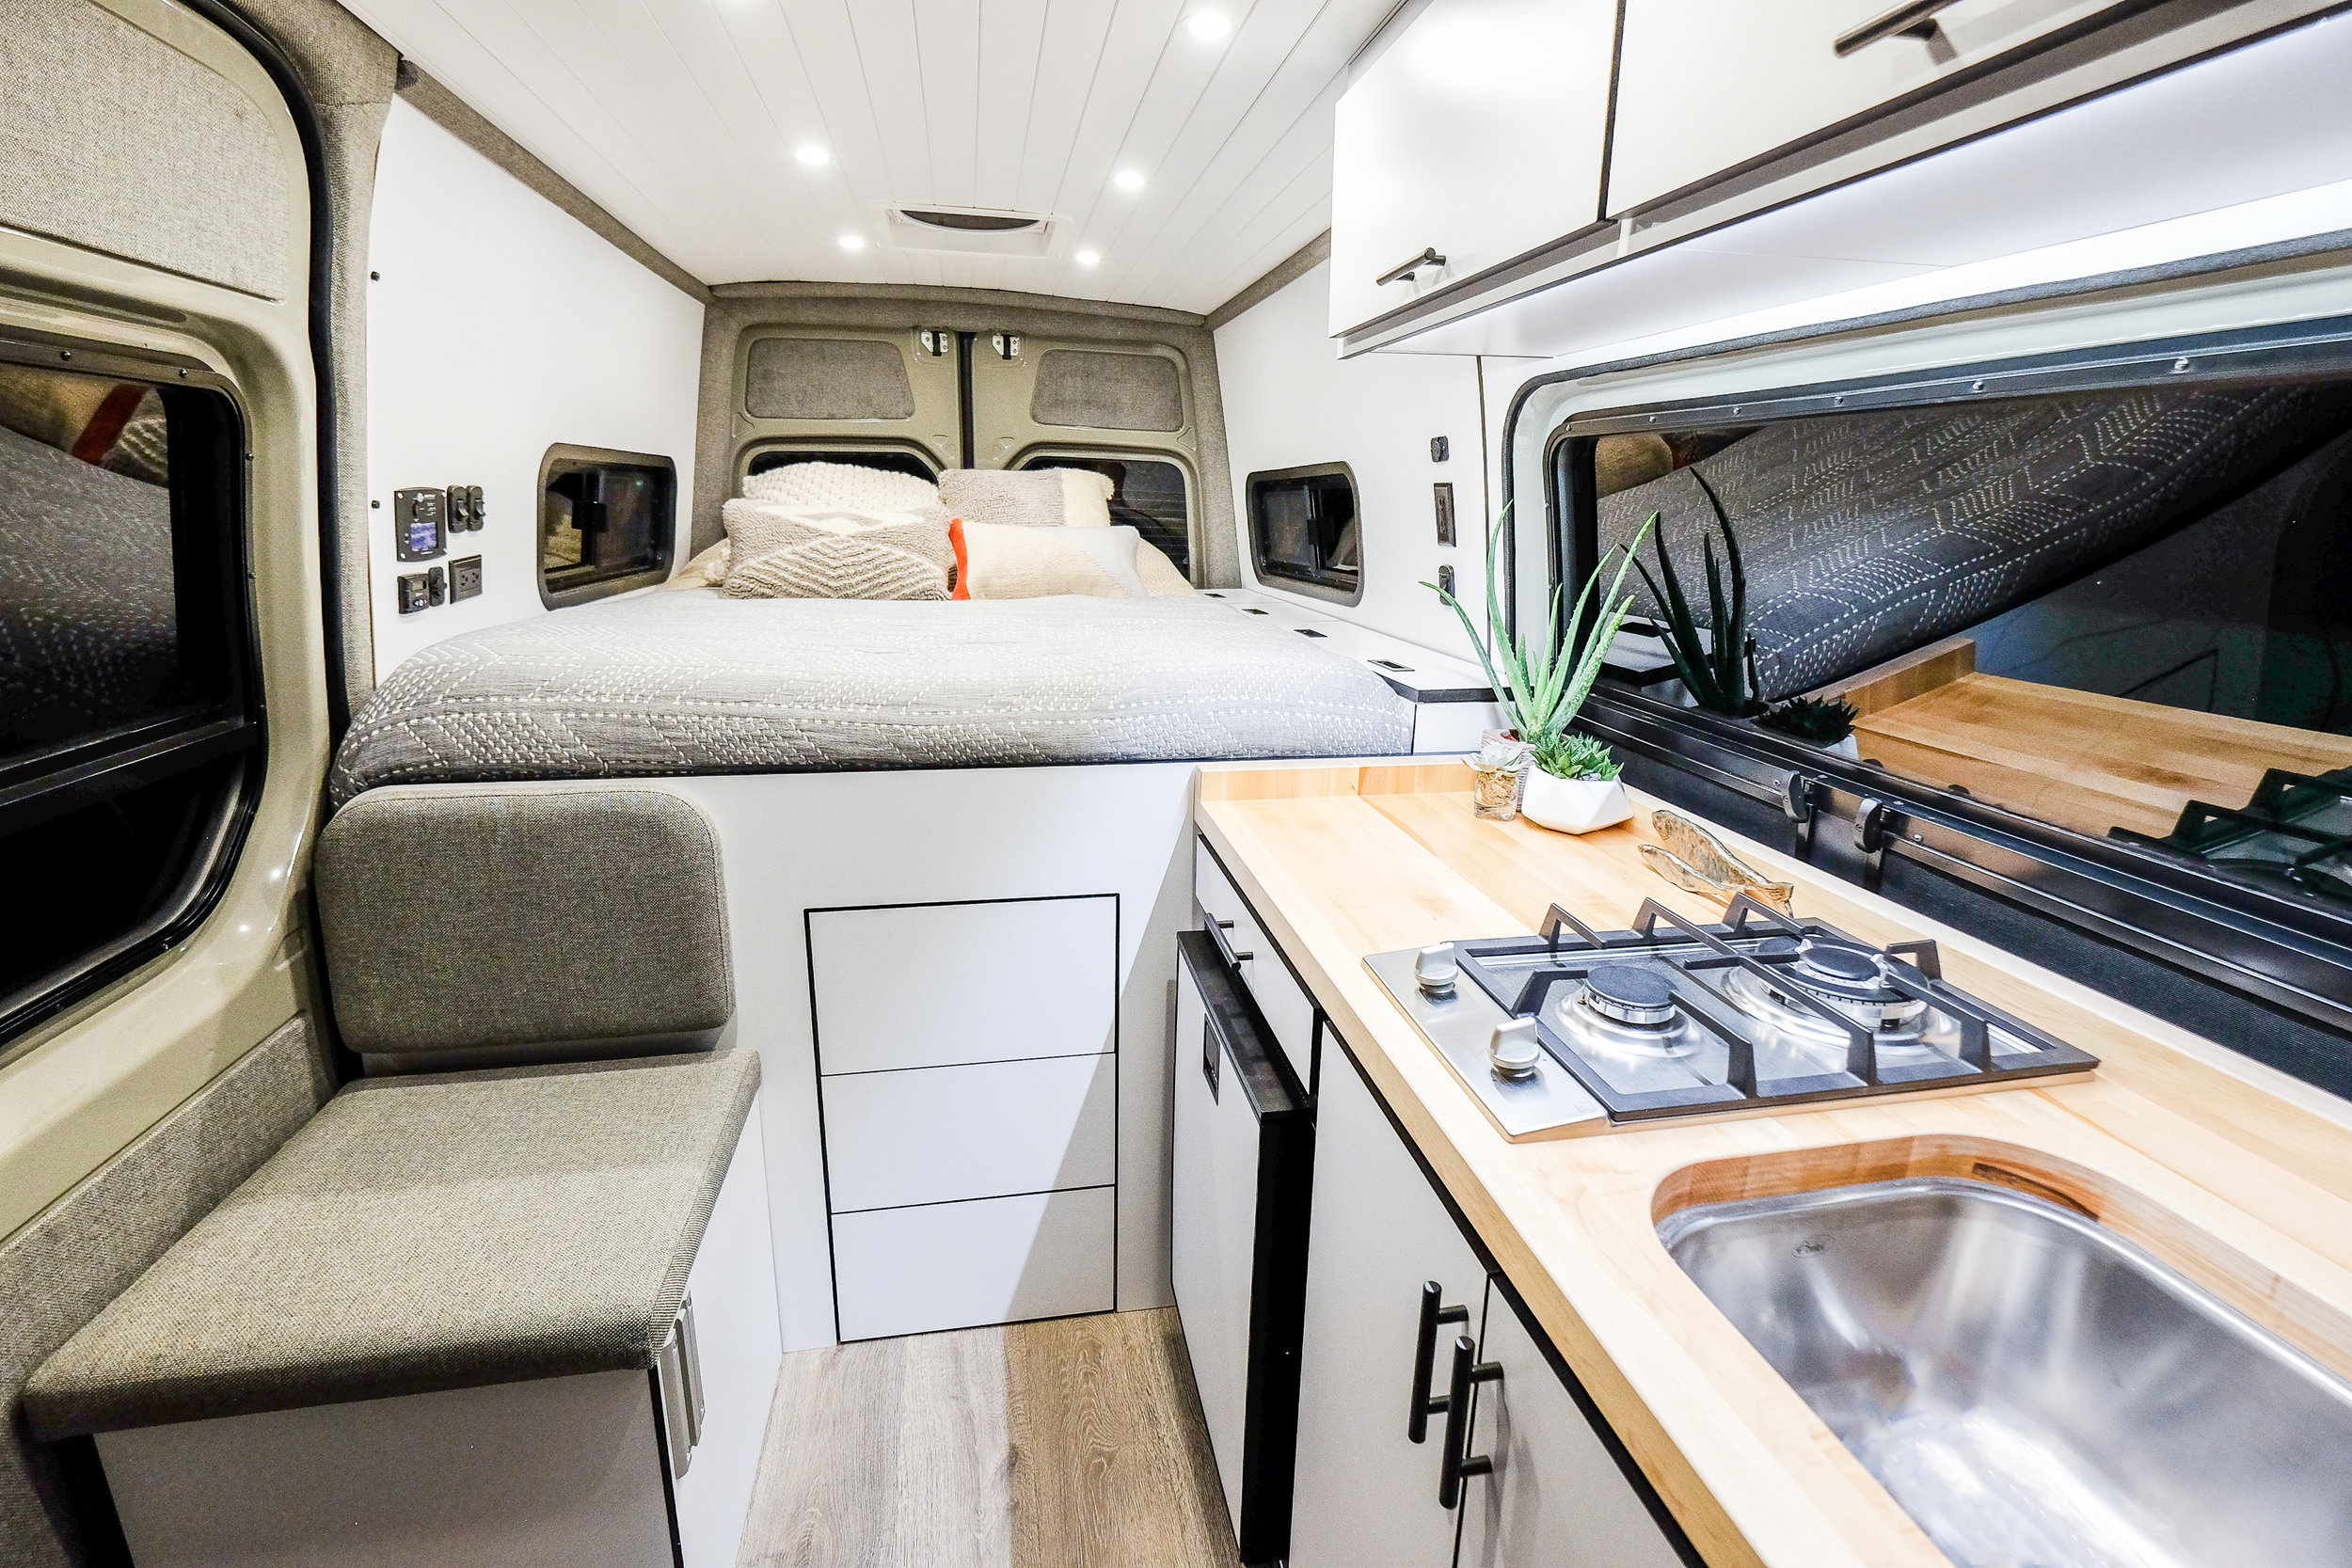 This Sprinter's sleek and modern design is chalked full of custom details. From the tongue and groove ceiling, to the bedside storage unit, custom fabricated pull-up bar, water filtration system, standing desk and pergola floor; JOMOVAN is one of the cleanest builds that has ever left the Vanlife Customs shop.